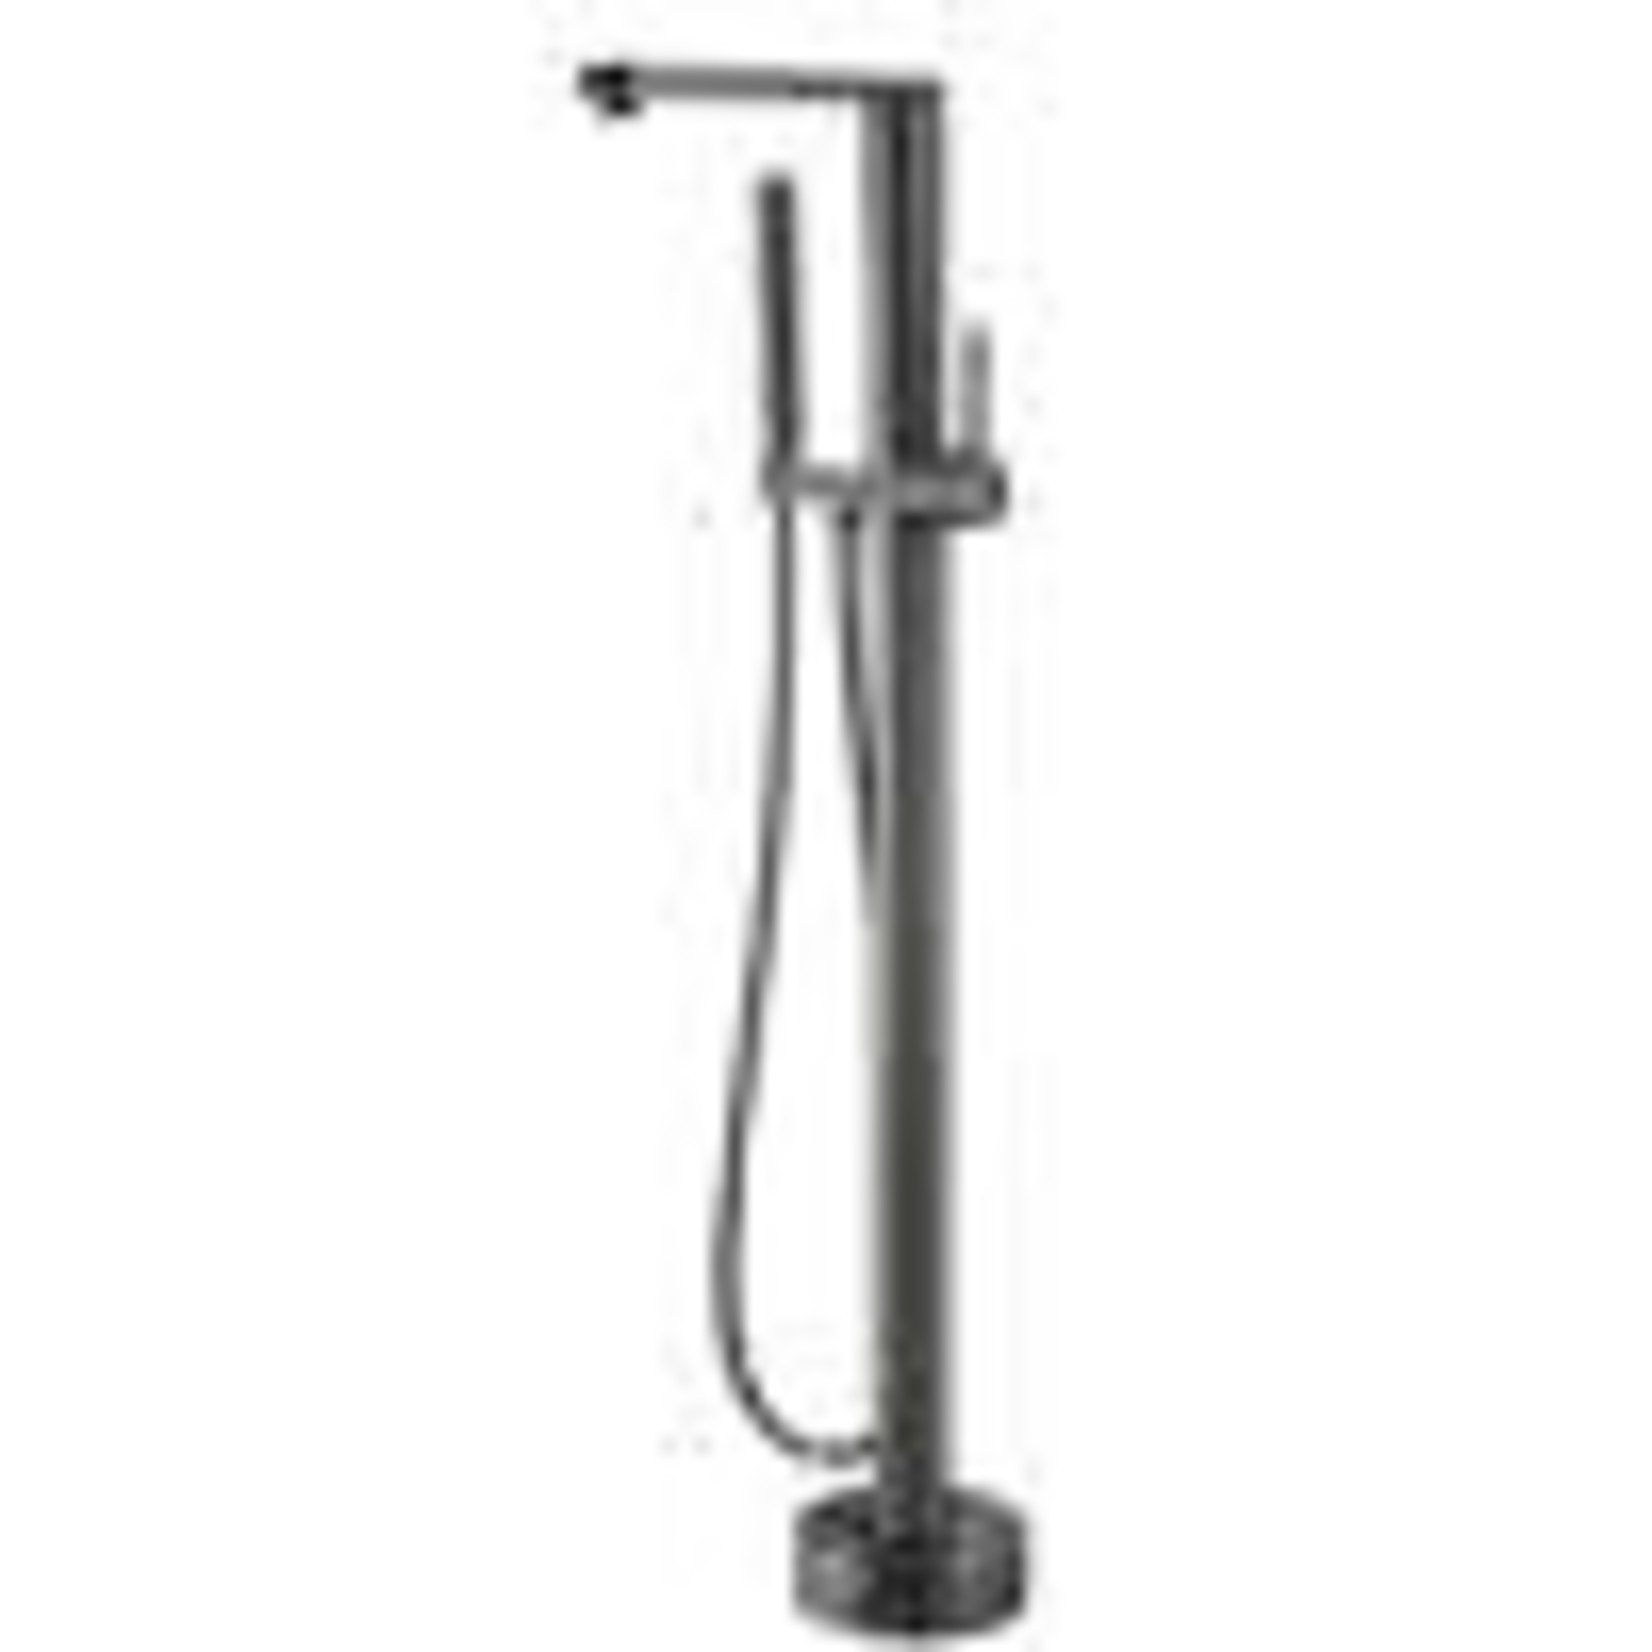 Freestanding metal gun tub faucet NDR-SF500-12-37-MG